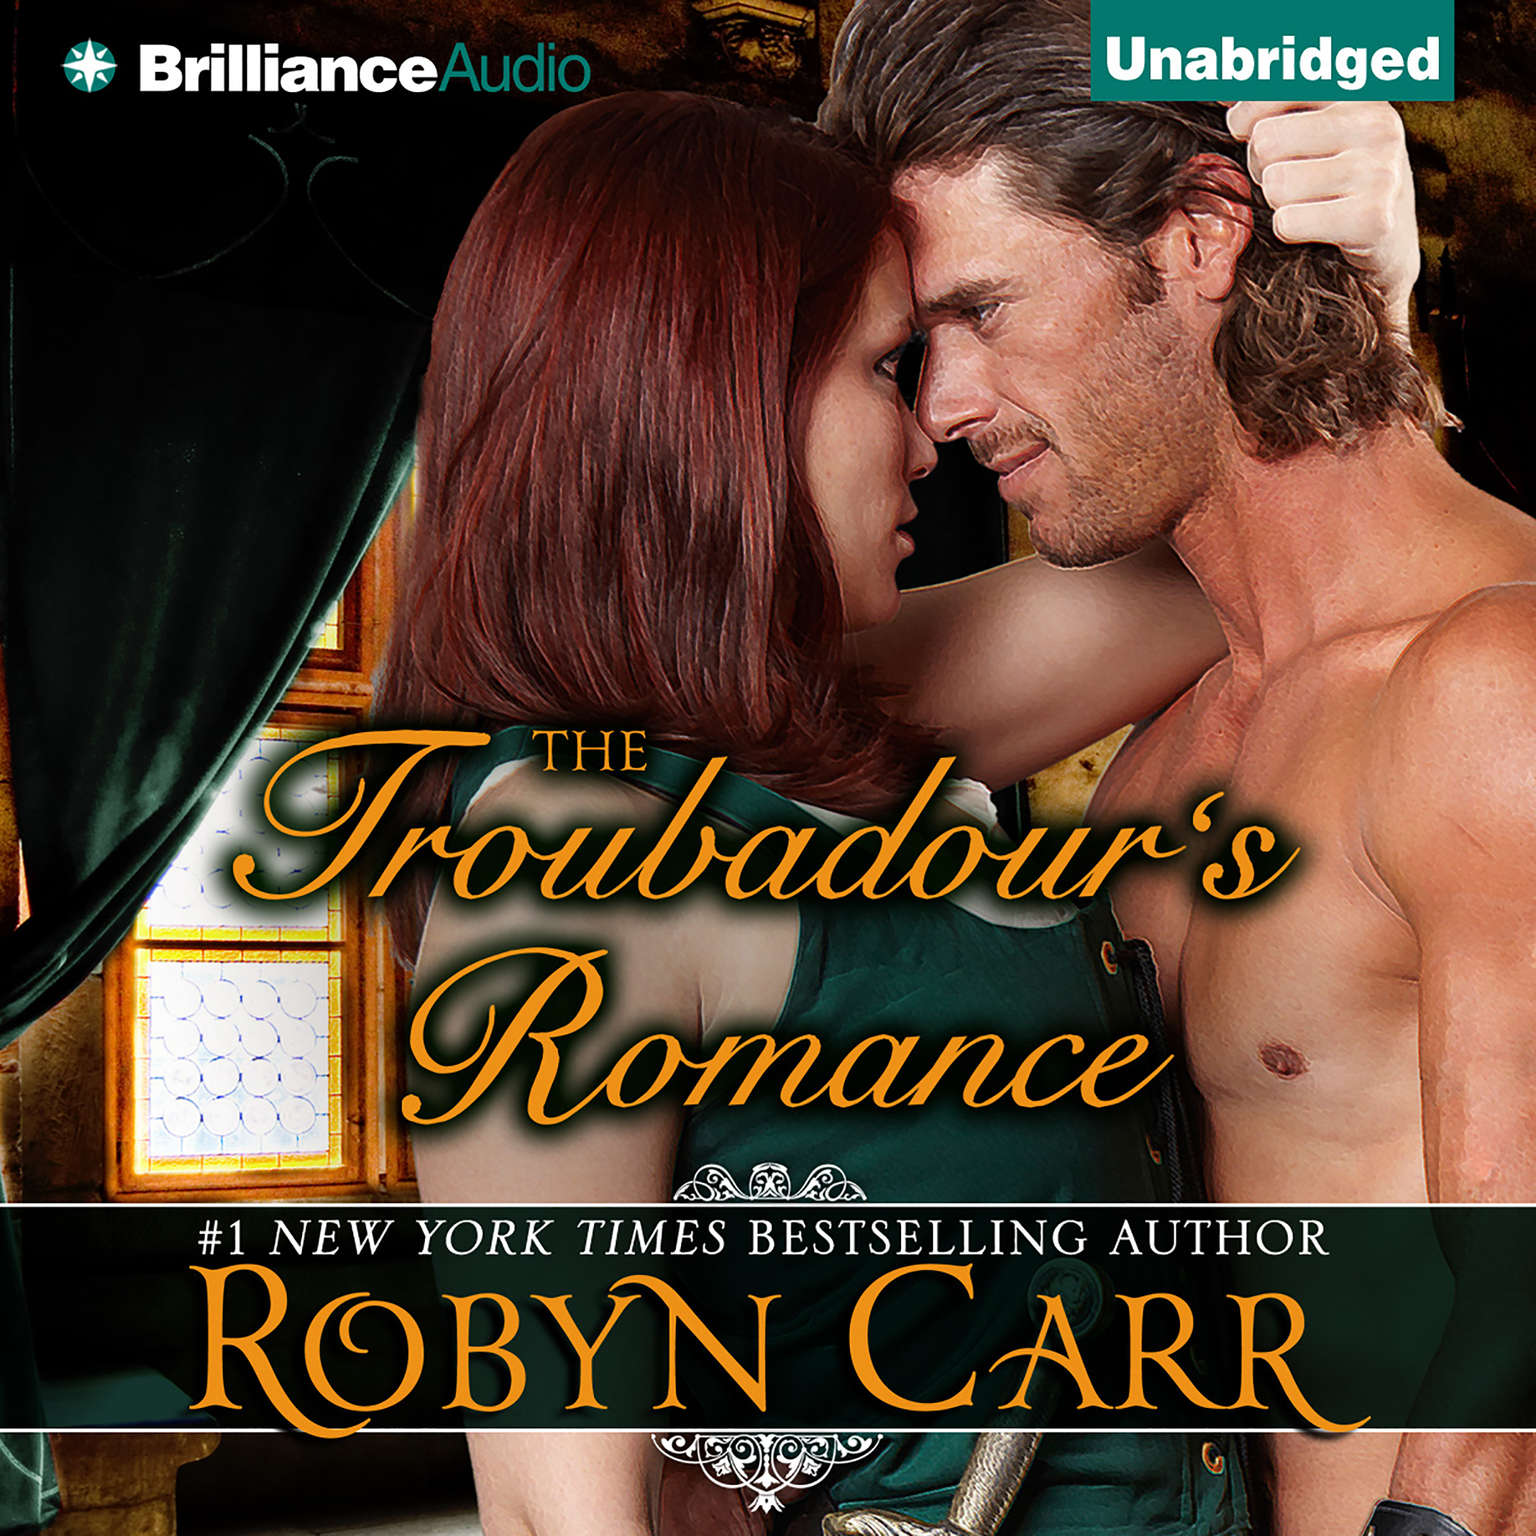 Printable The Troubadour's Romance Audiobook Cover Art